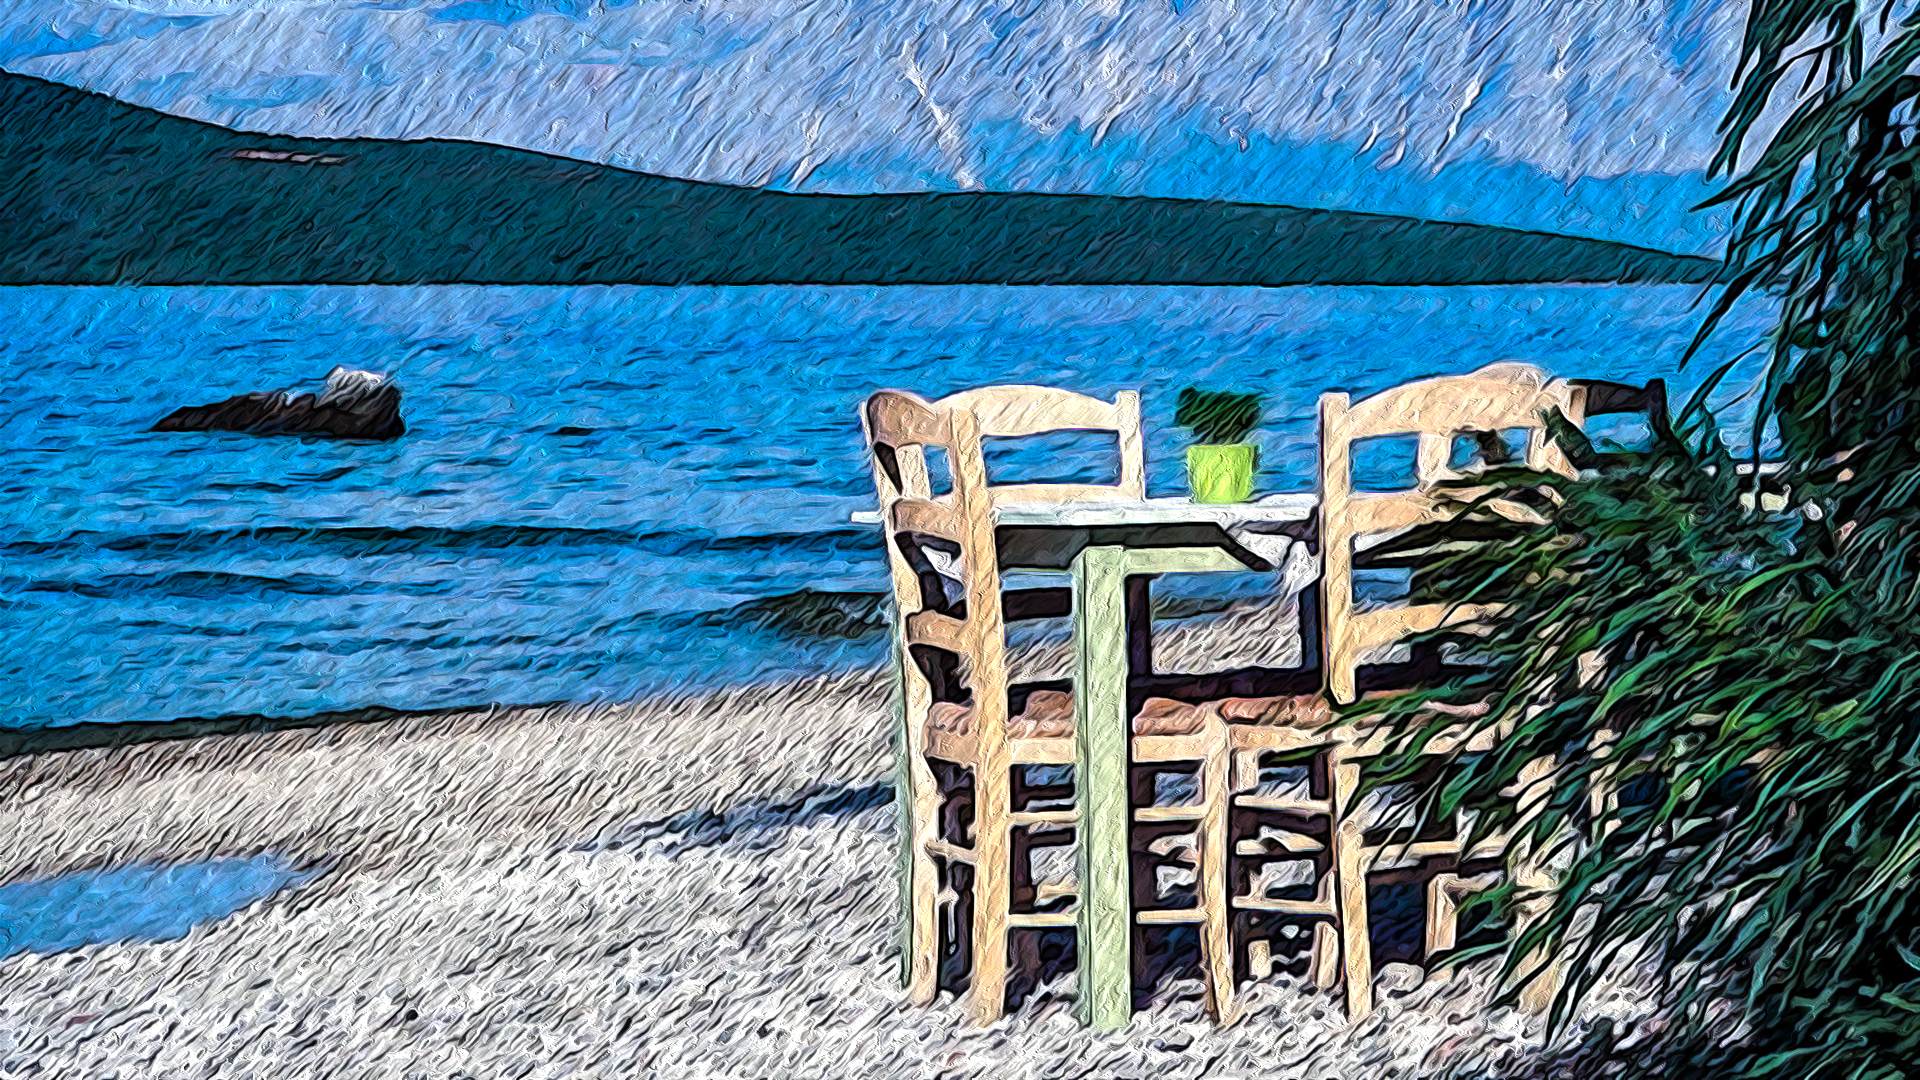 A table by the sea articcio